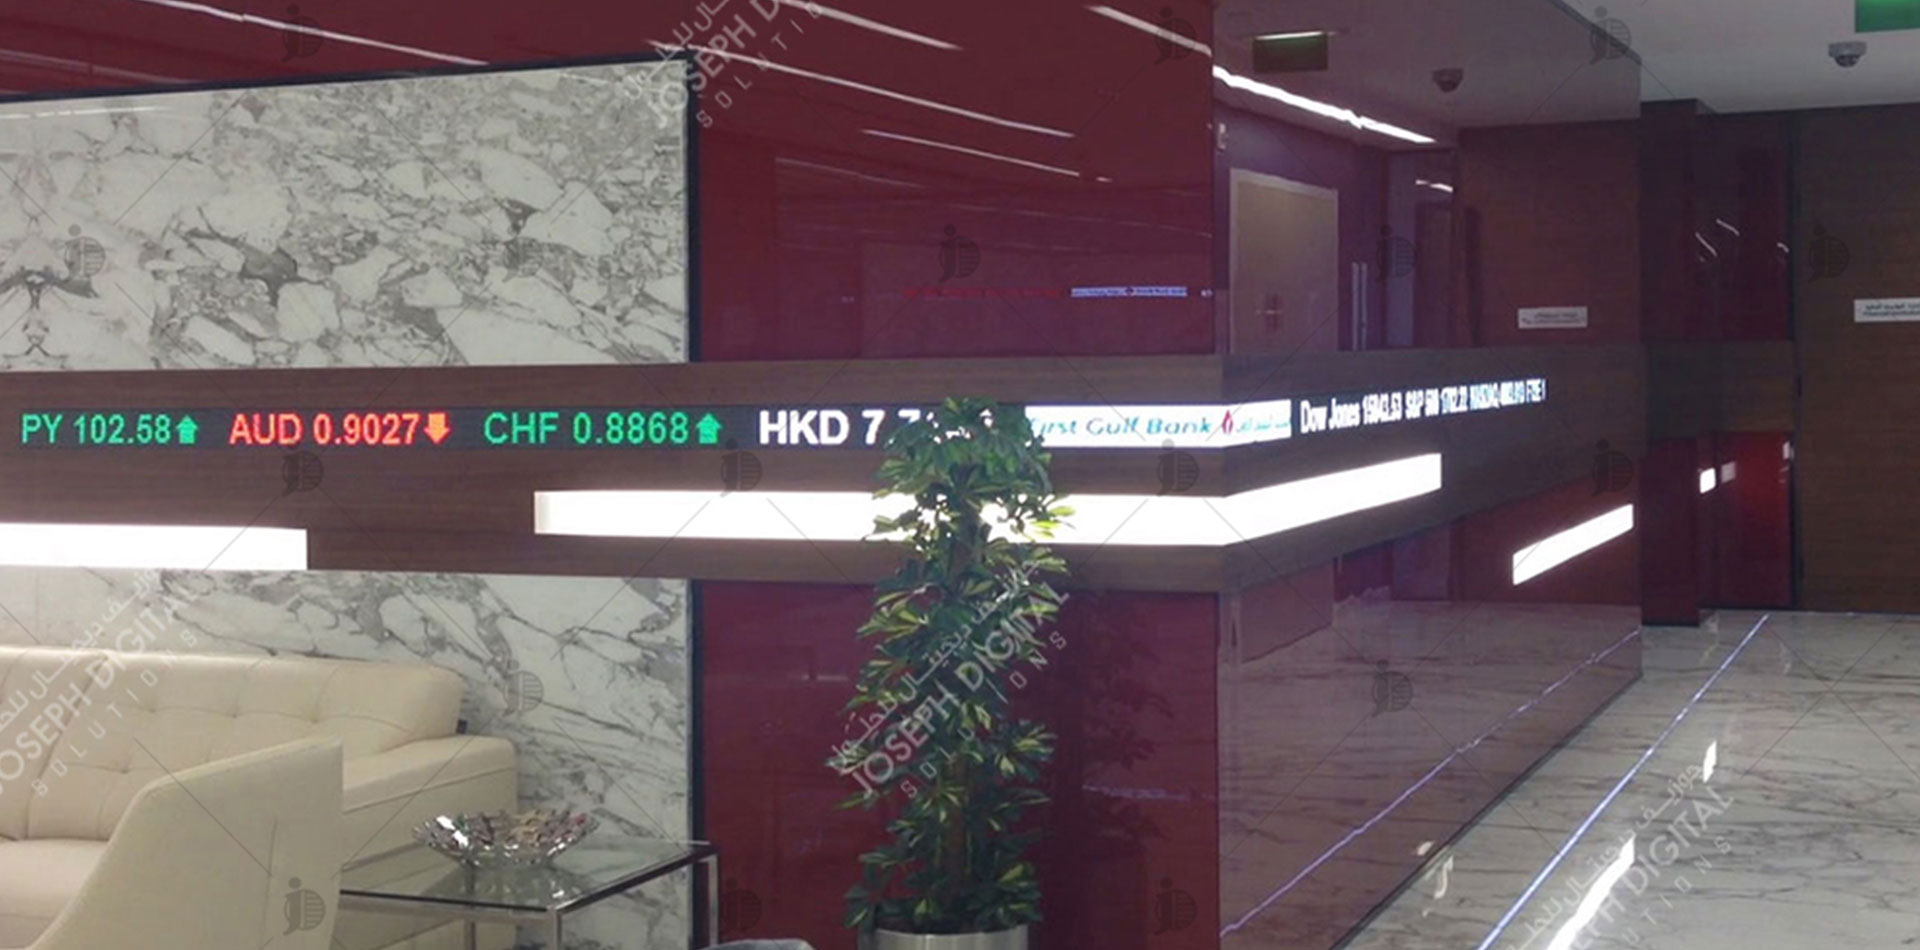 LED ticker Signage of First Gulf Bank